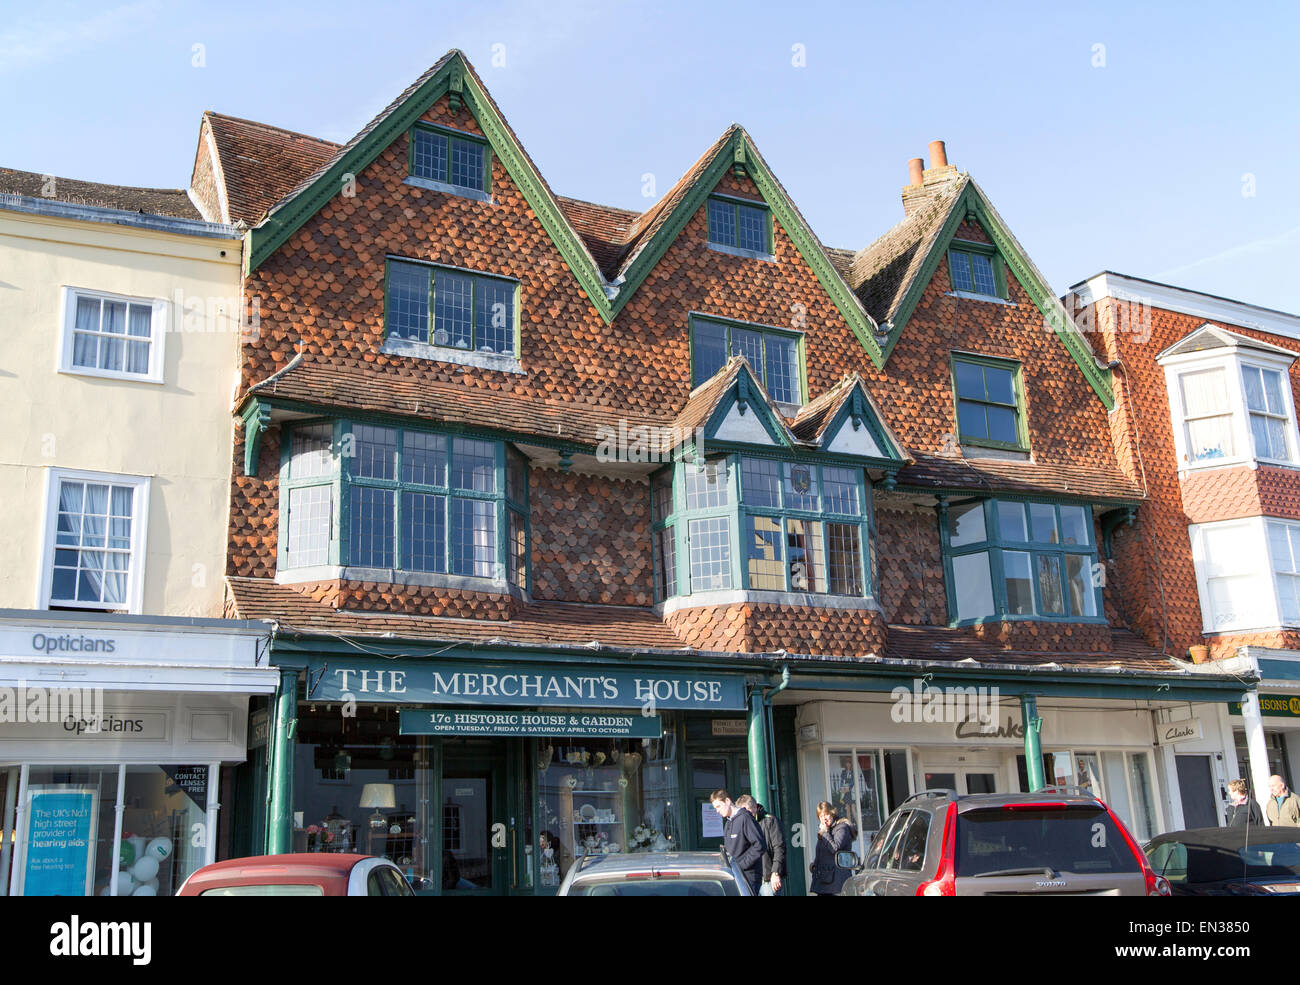 The Merchant's House on the High Street in Marlborough, Wiltshire, England, UK - Stock Image